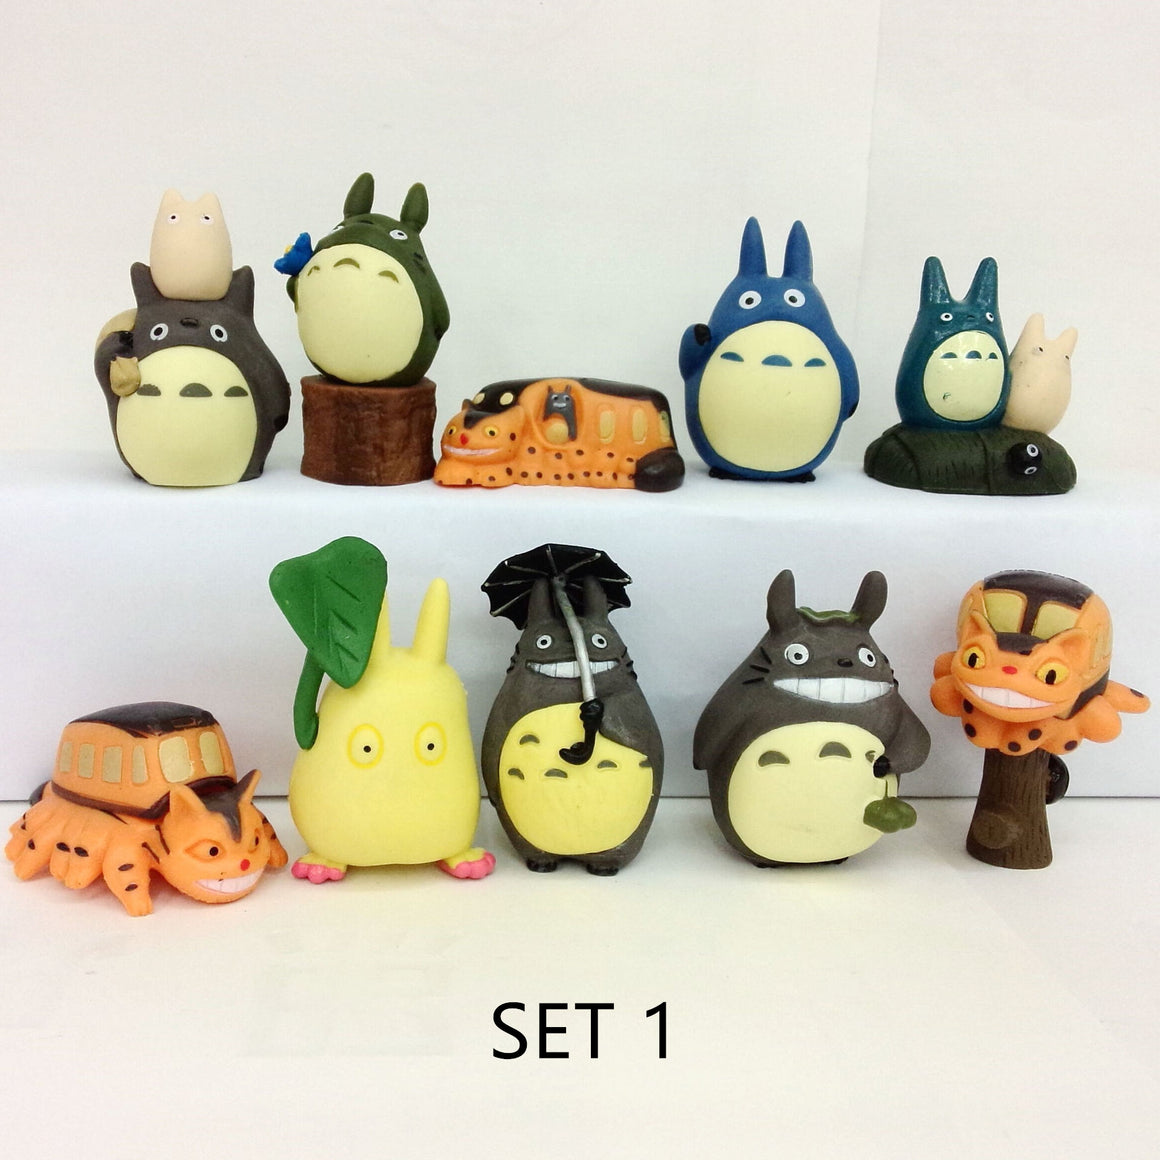 Totoro Mini Action Figures Set